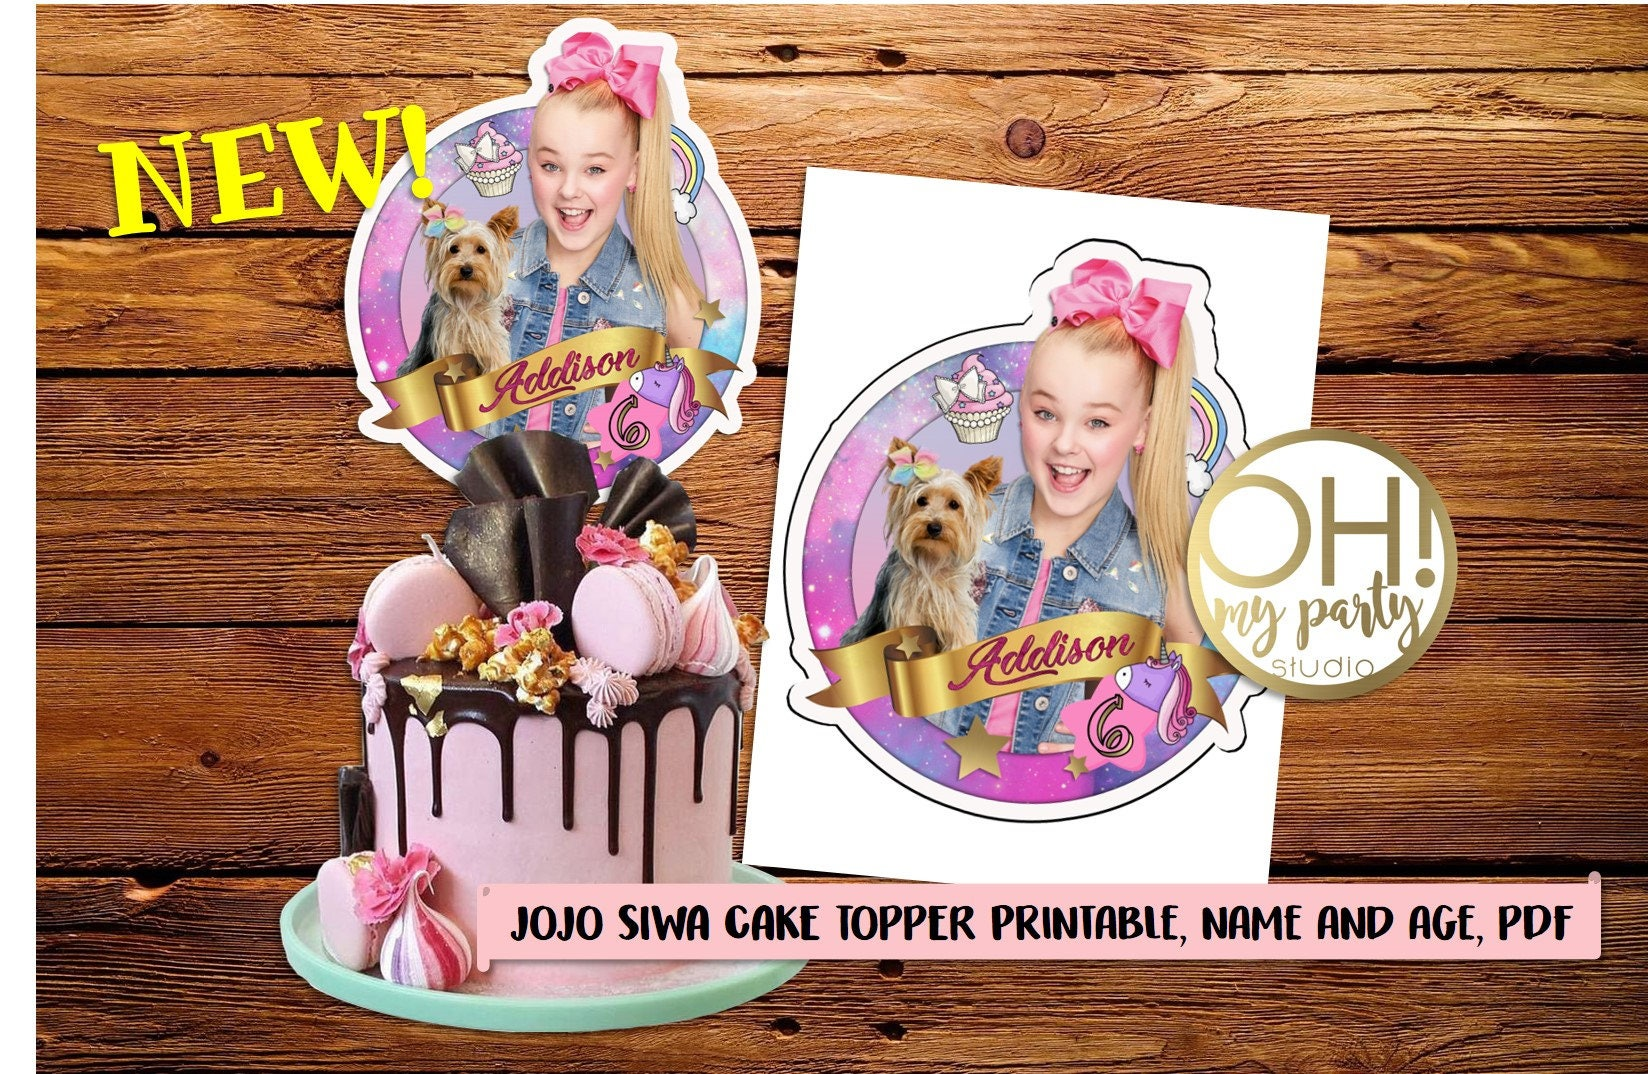 Jojo Siwa Cake Topper Jojo Siwa Party Suppliesjojo Siwa Etsy